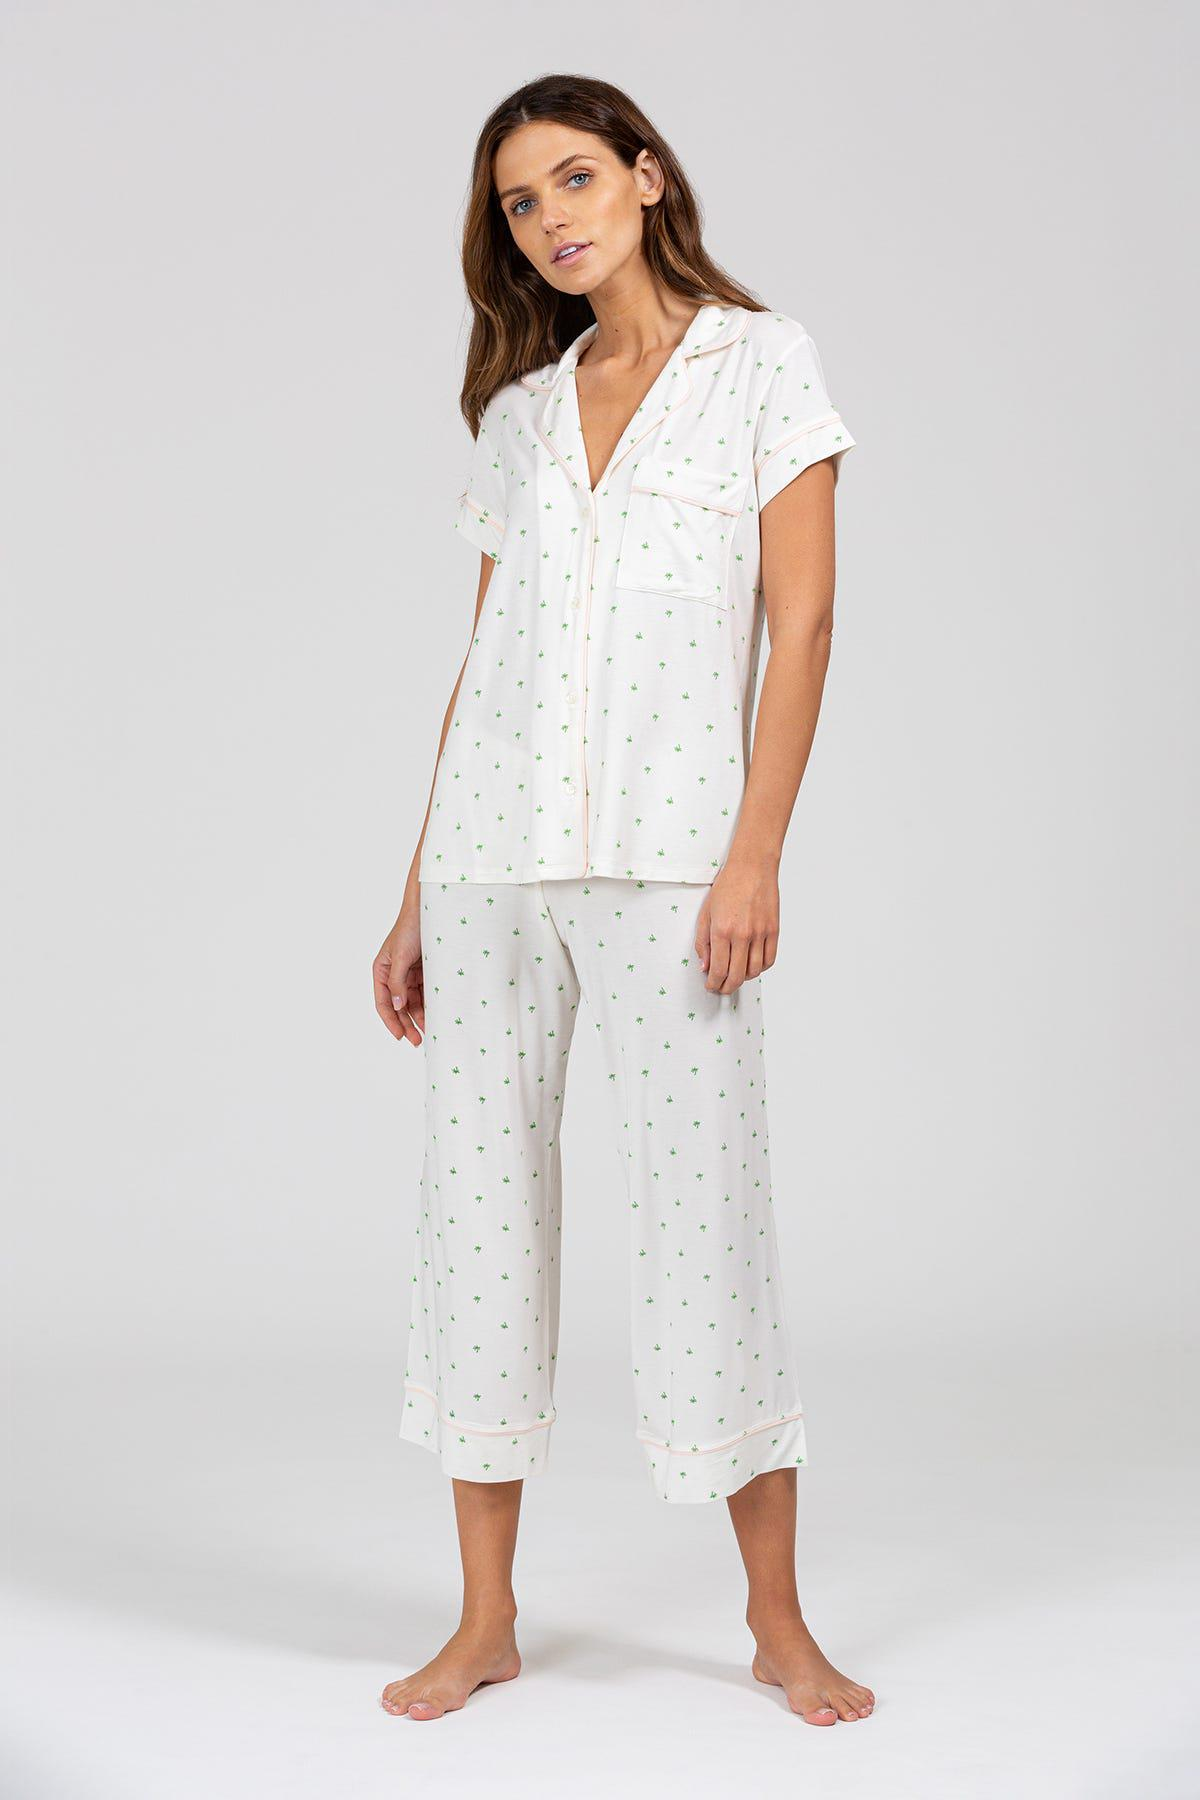 Palm Short Sleeve and Cropped Pant PJ Set